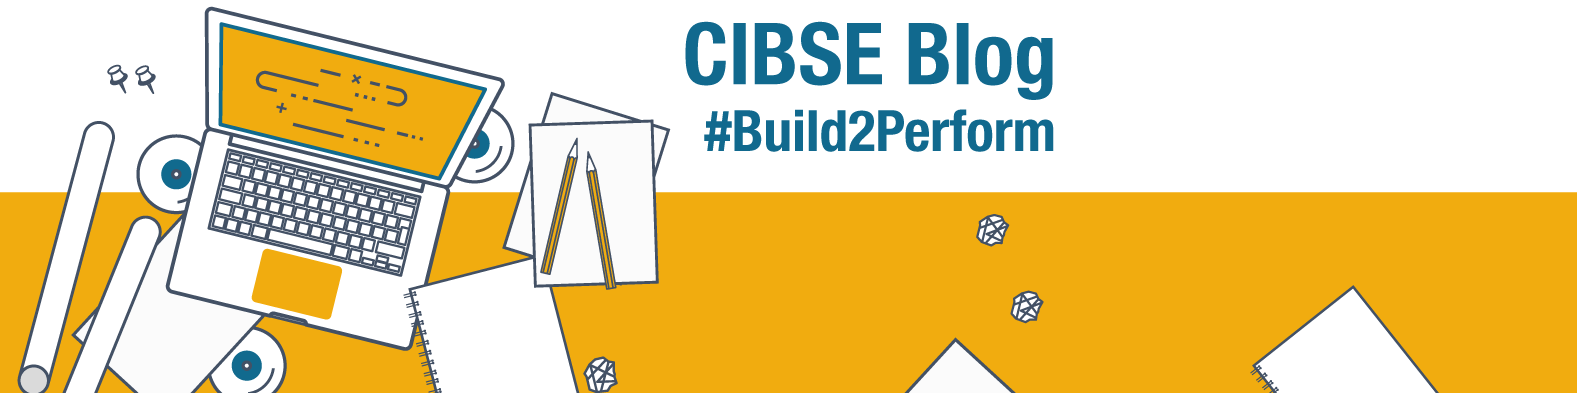 CIBSE Blog